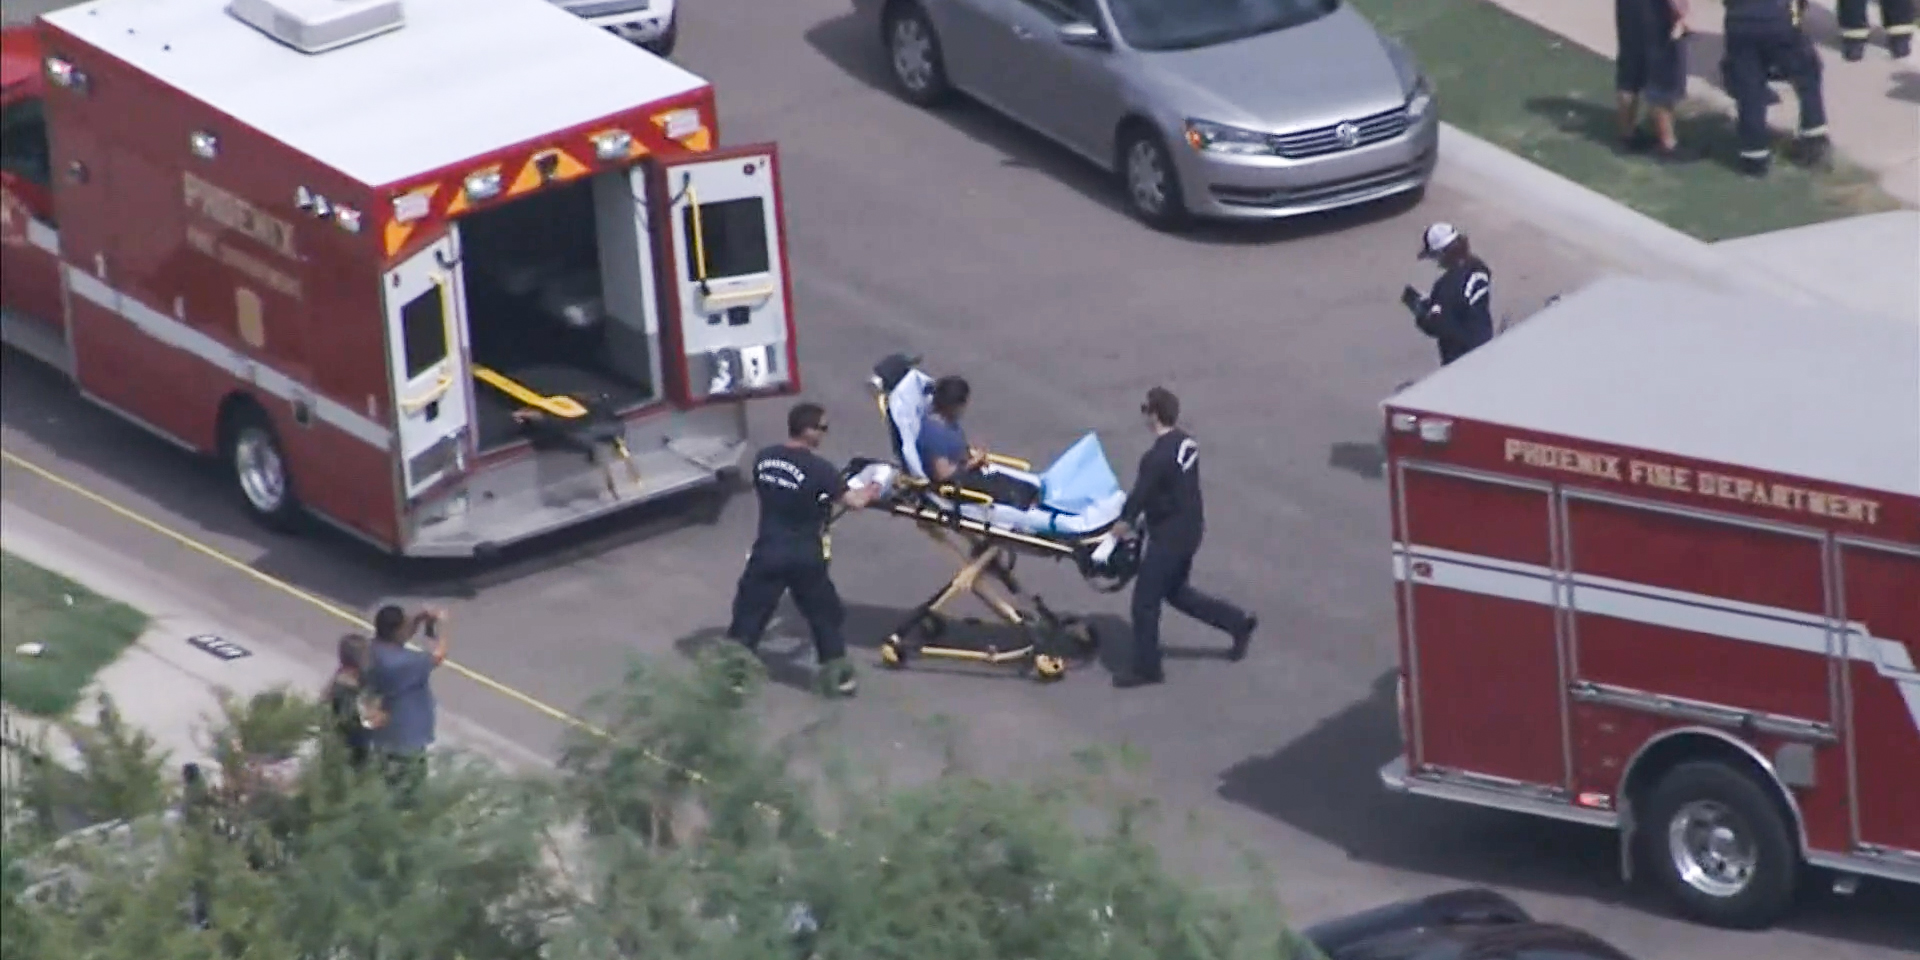 Phoenix mother accused of fatally shooting daughter, 2, and critically wounding son, 6